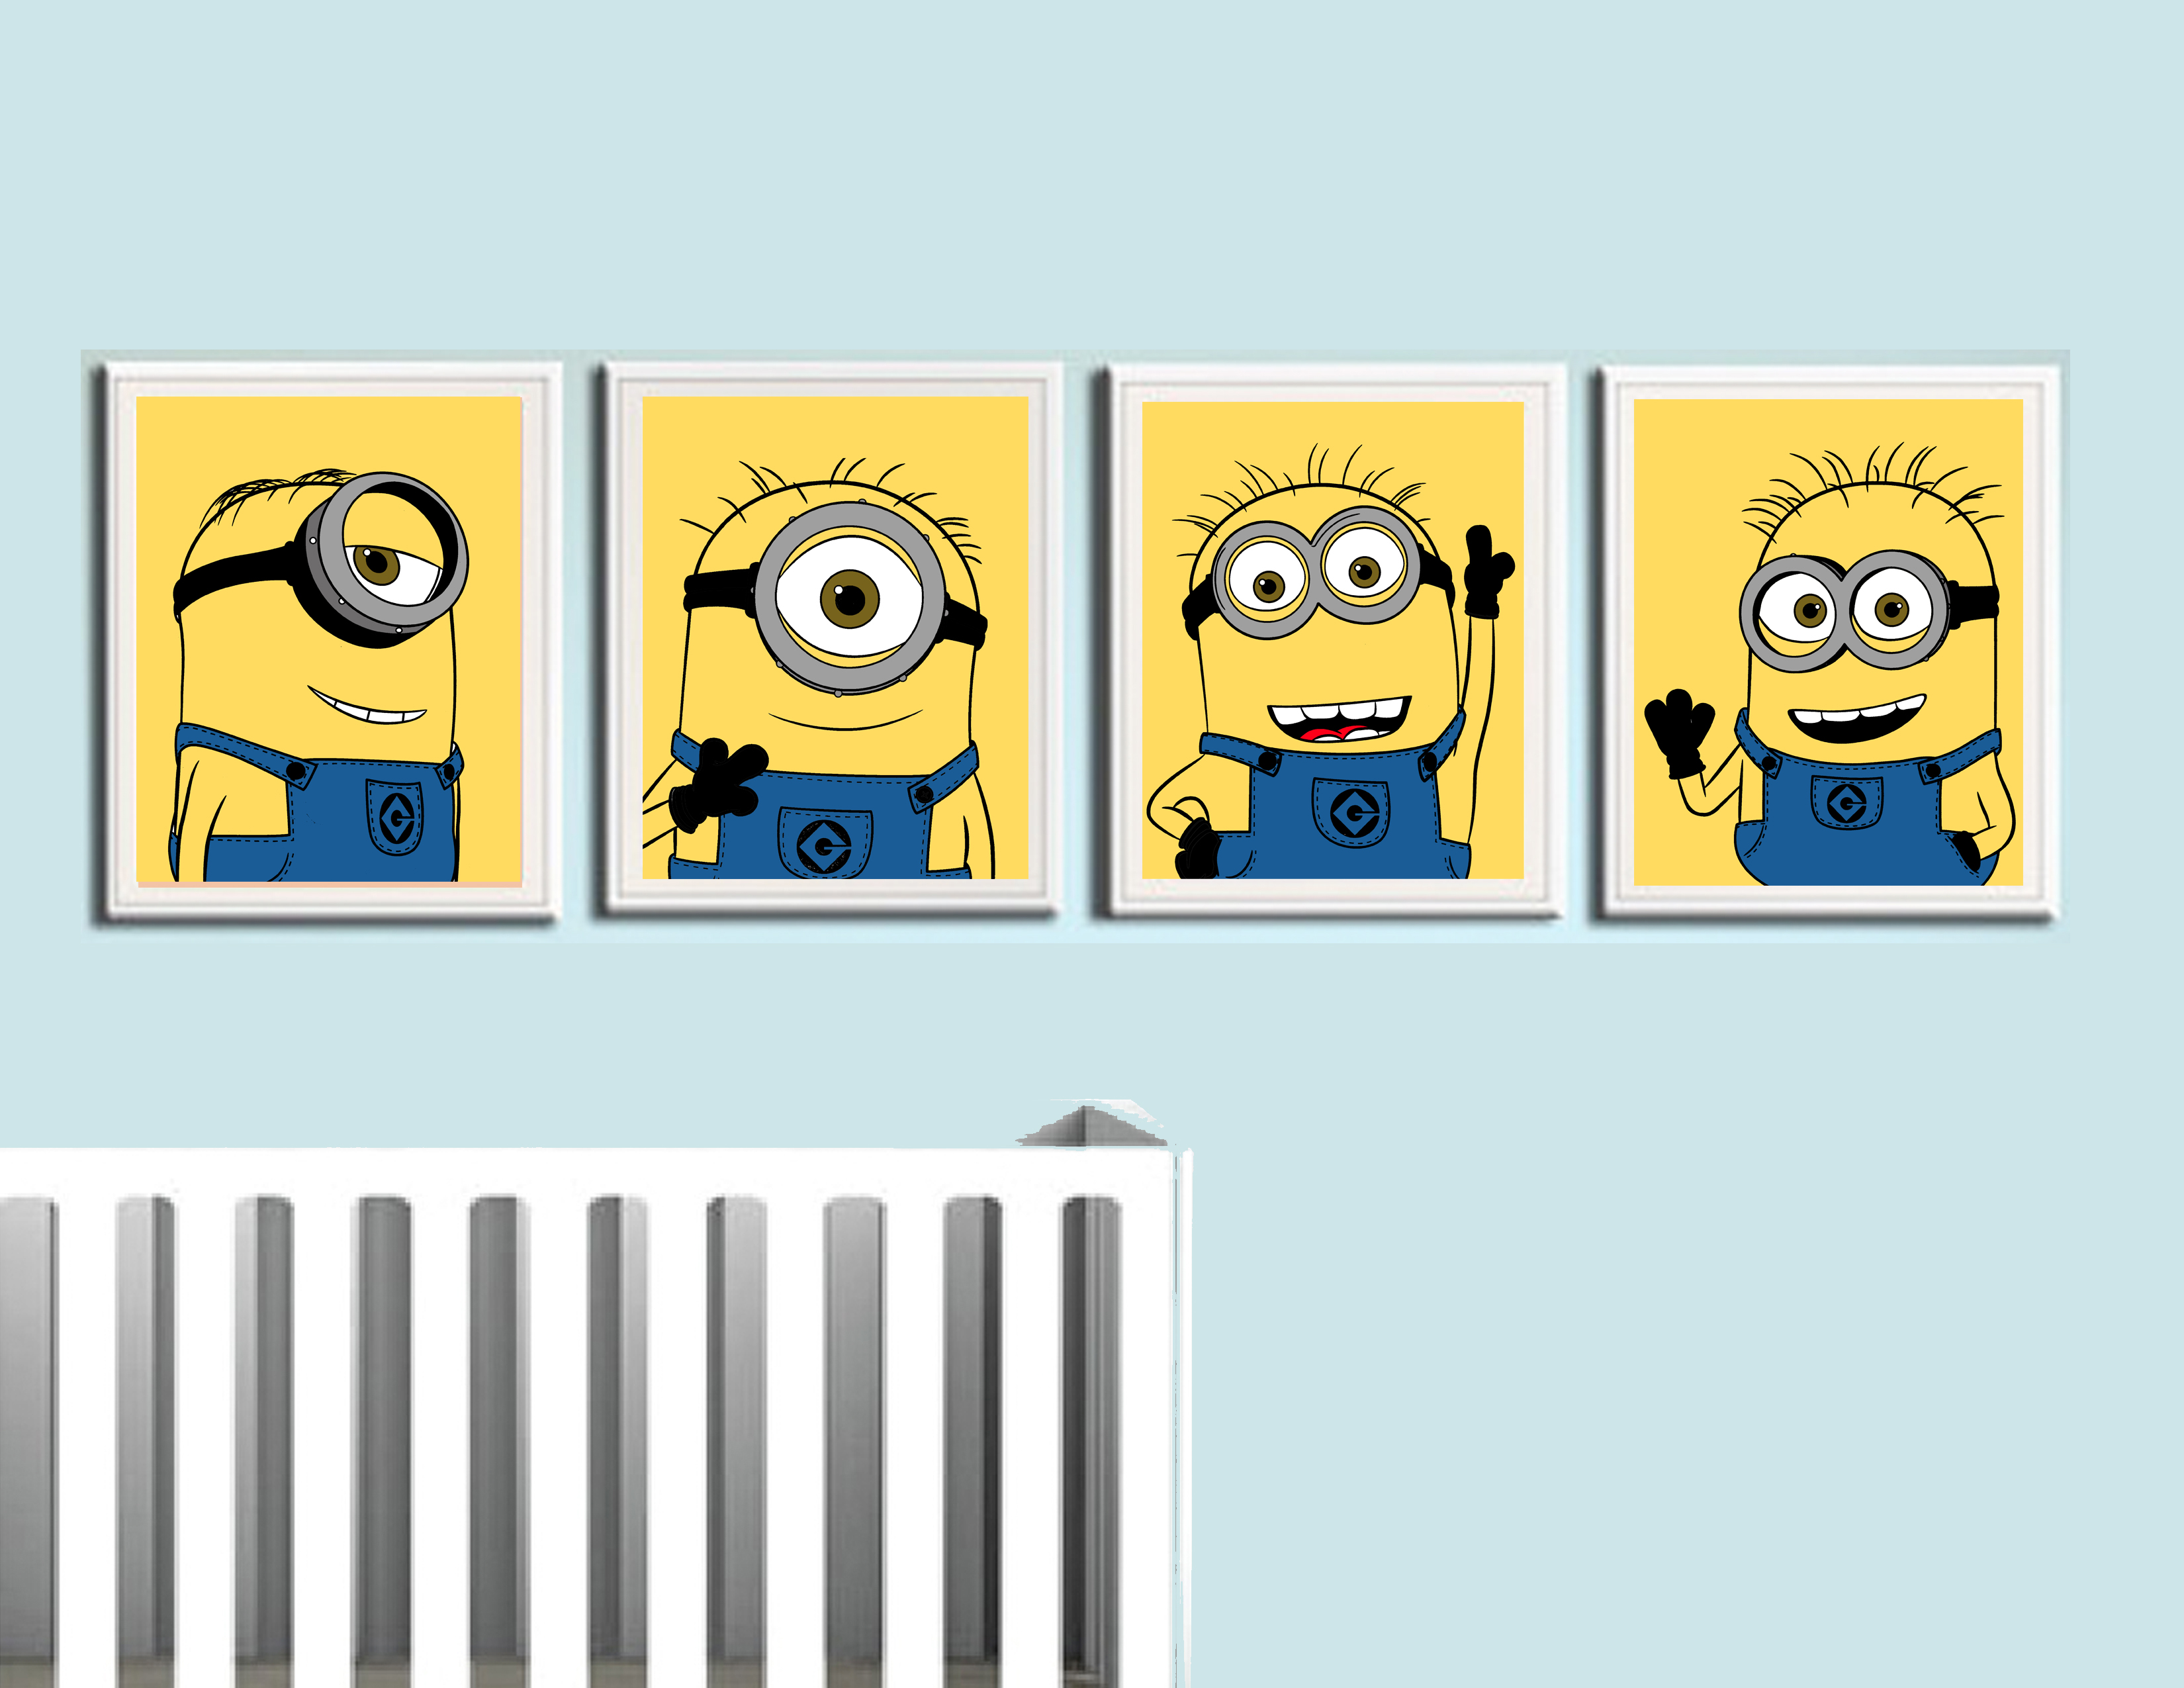 Glow In The Dark Wall Murals Despicable Me Minions Nursery Prints 4 Pack On Storenvy